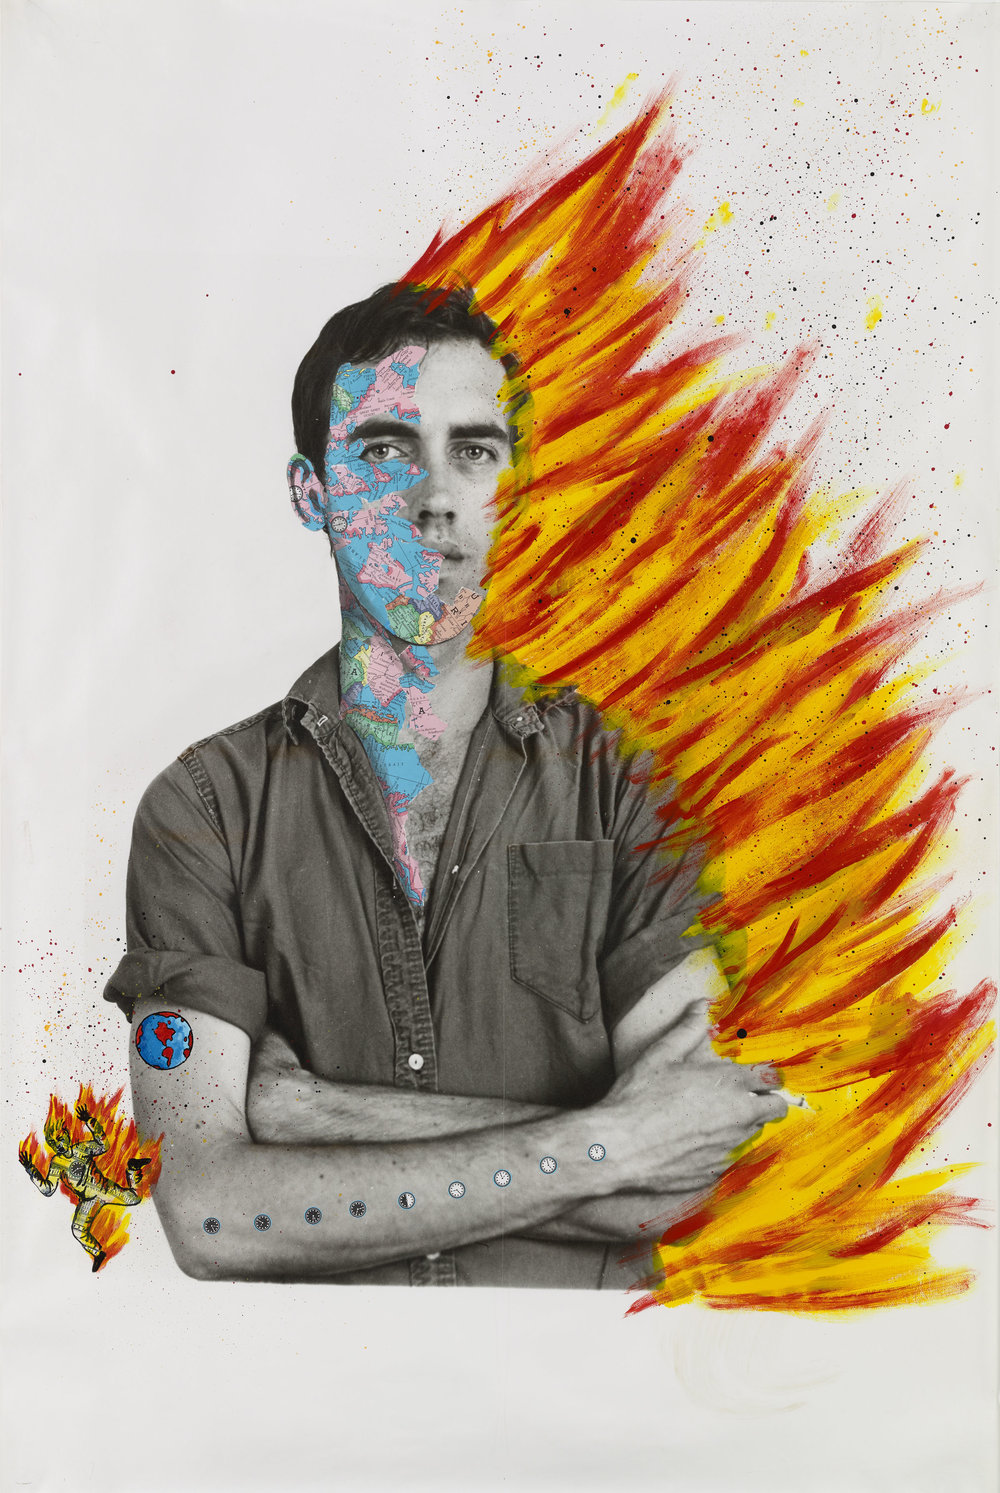 xlarge_Portrait-Self_Portrait_of_David_Wojnarowicz_1983-85_2.jpg